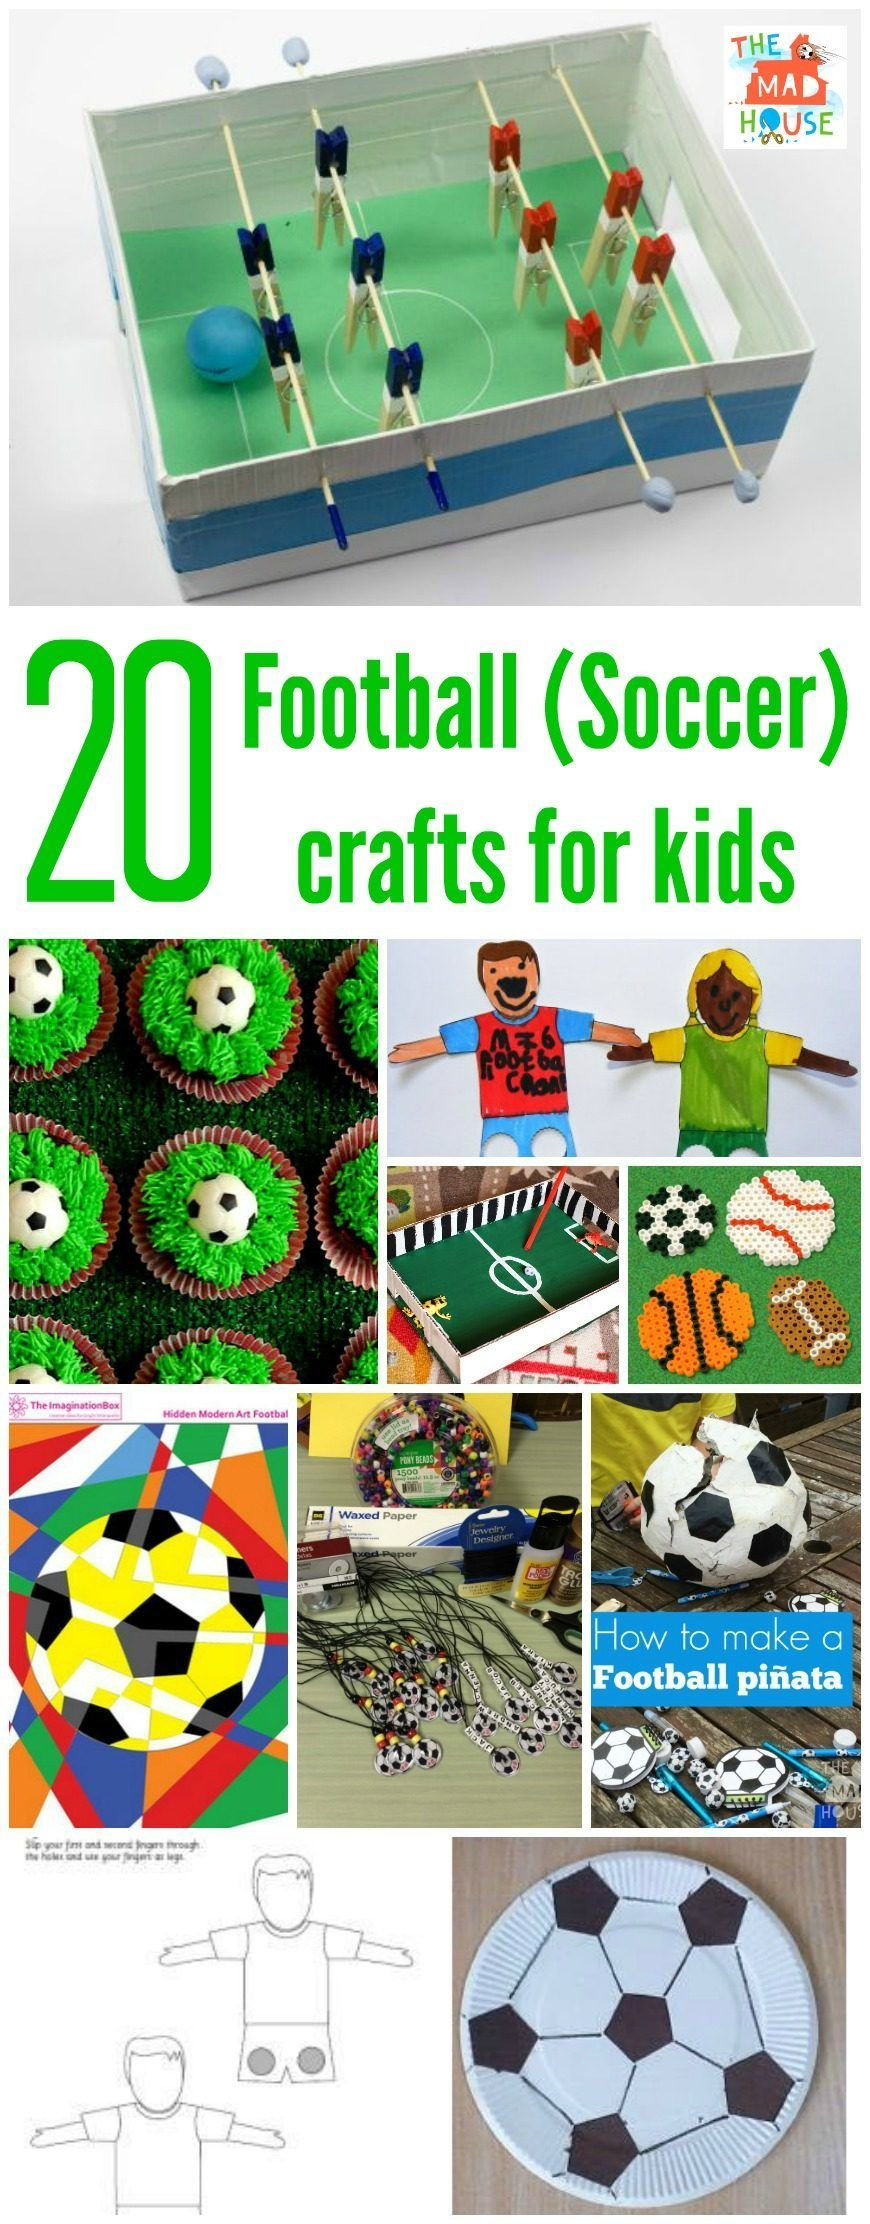 Football crafts or soccer crafts soccer crafts football crafts over 20 fab football crafts or soccer crafts for kids celebrate the beautiful game with these fun and easy to prepare crafts and activities for children solutioingenieria Images